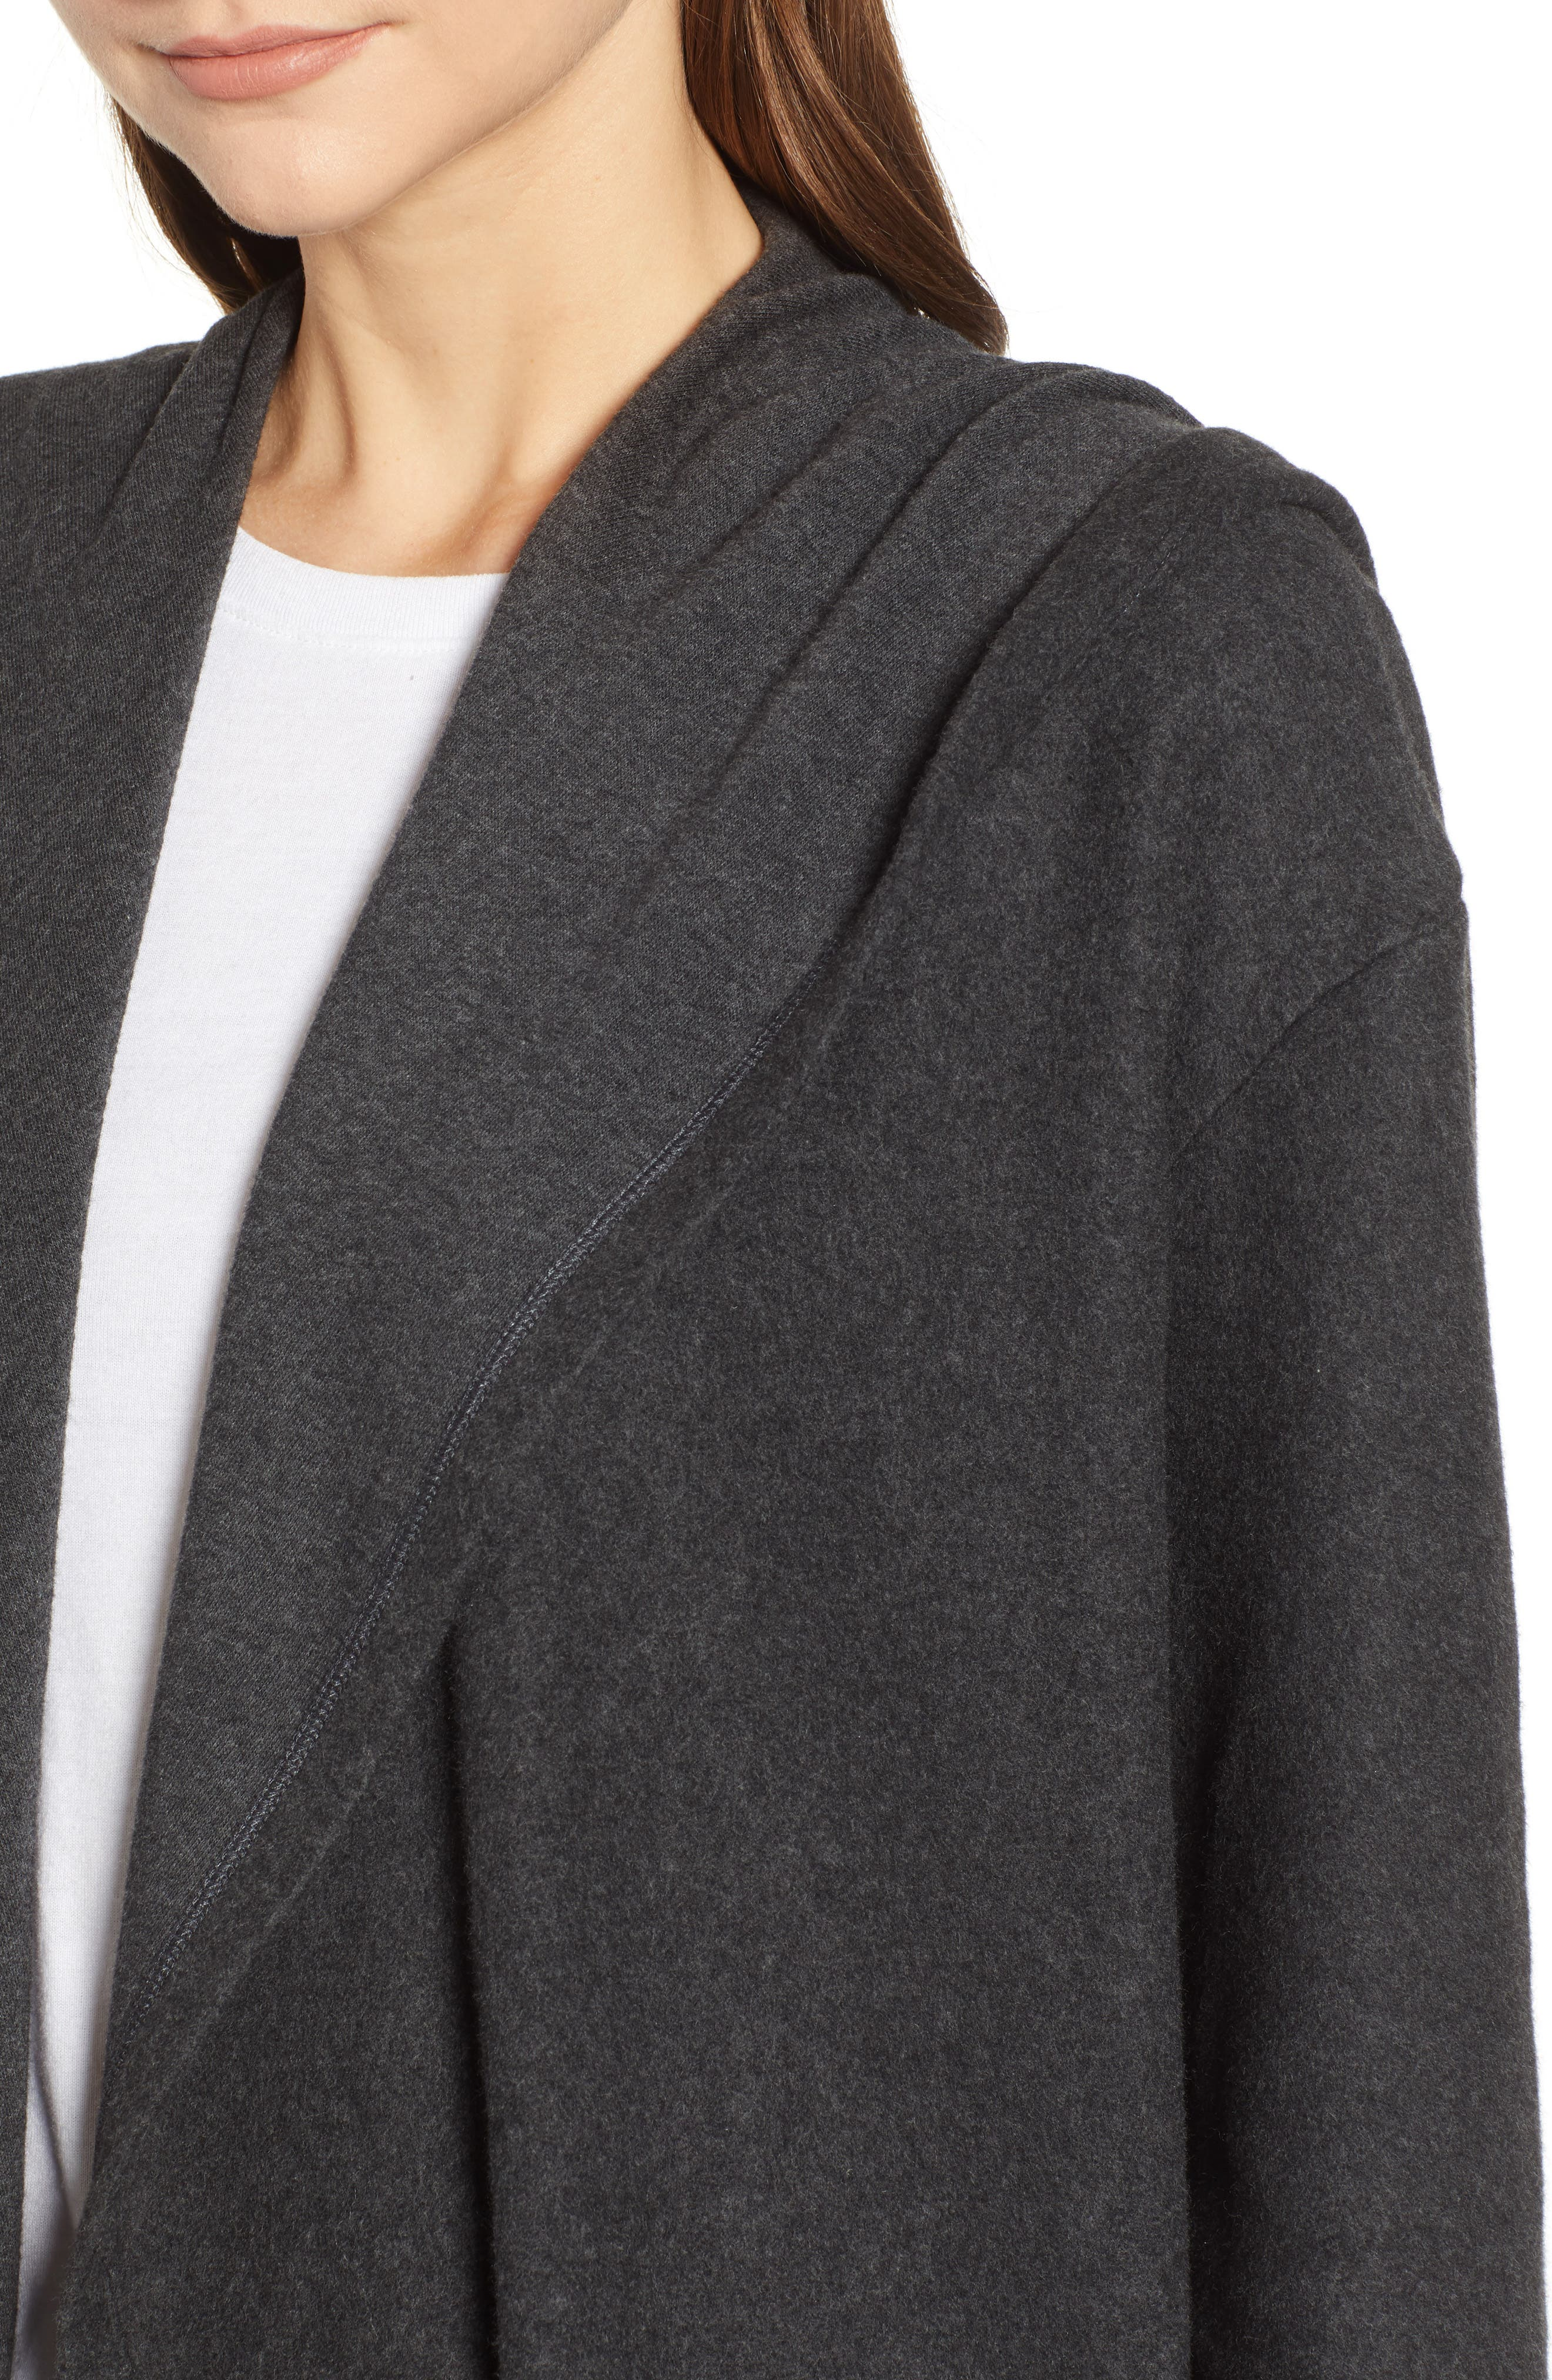 Hooded Open Front Cardigan,                             Alternate thumbnail 4, color,                             GREY DARK CHARCOAL HEATHER